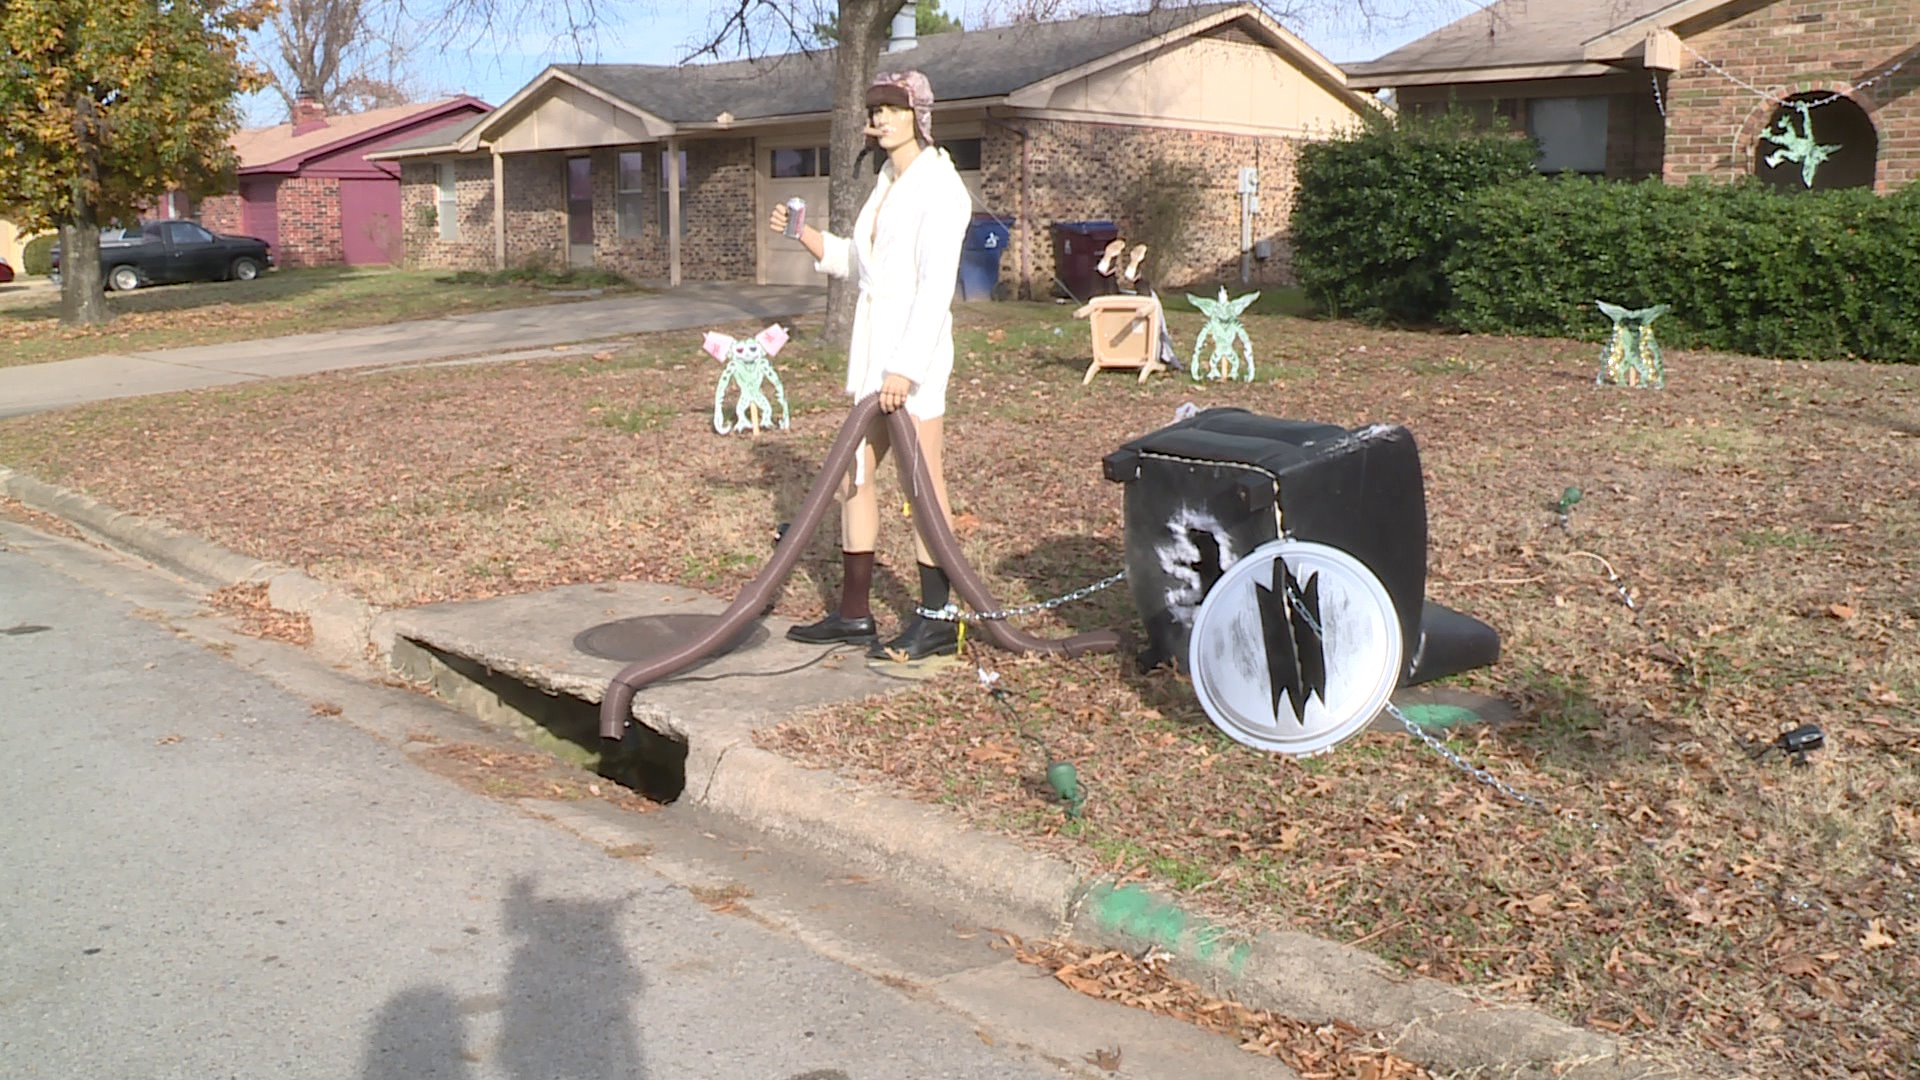 christmas vacation lawn decorations stolen after going viral fort smithfayetteville news 5newsonline kfsm 5news - Christmas Vacation Lawn Decorations